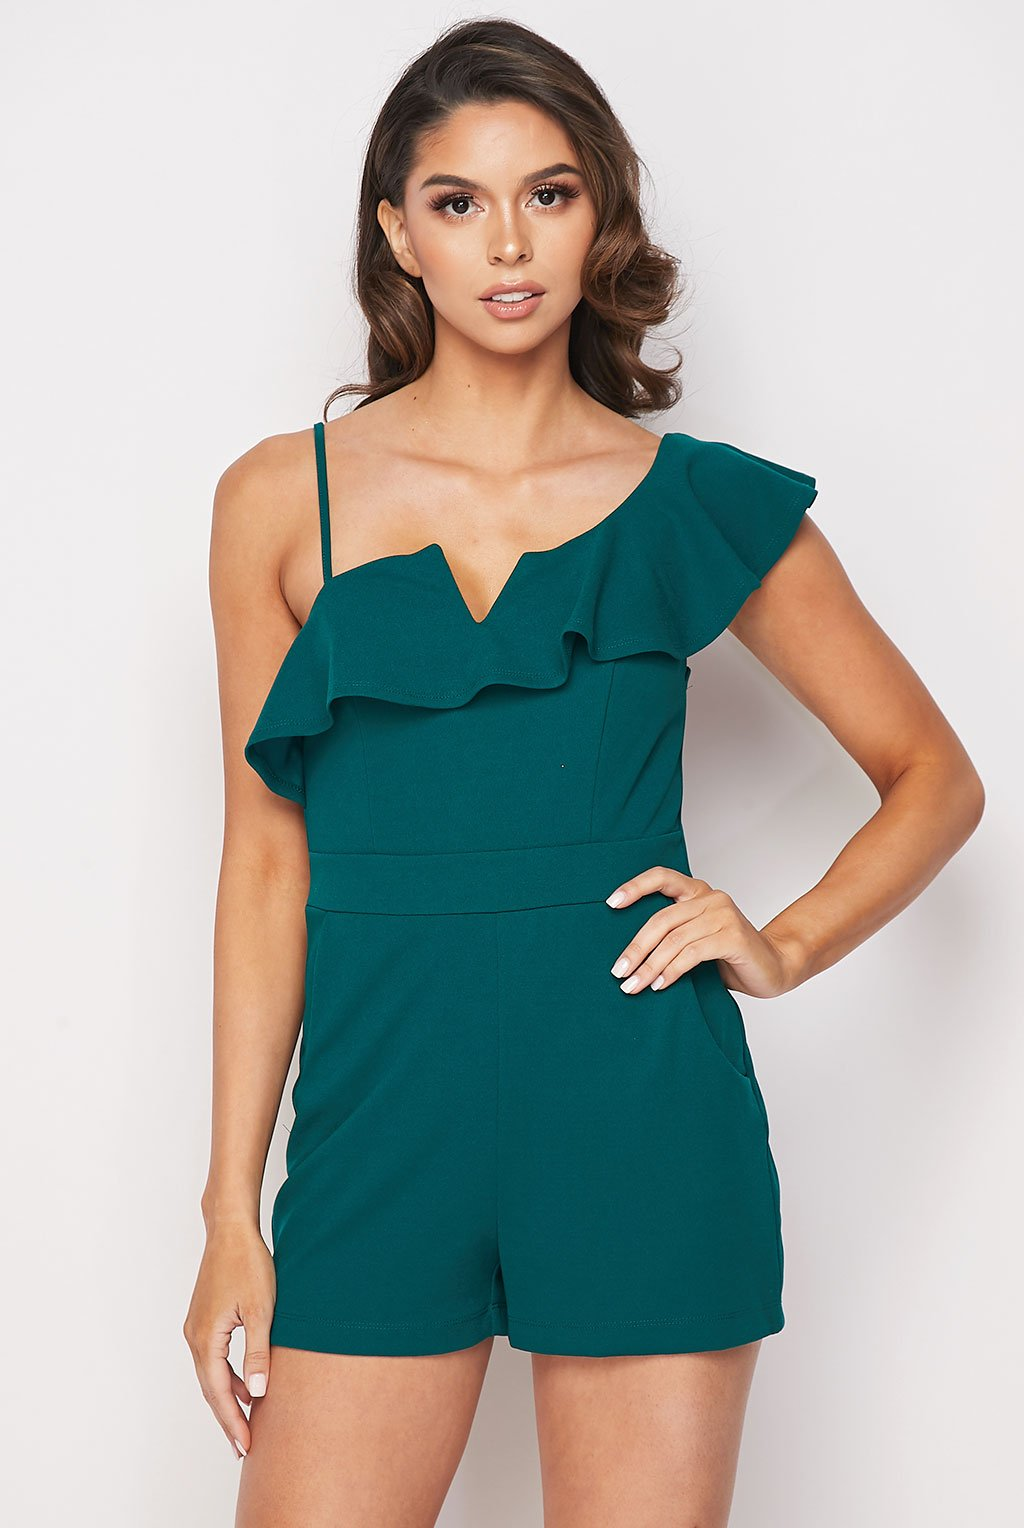 Teeze Me | Ruffle One Shoulder Romper With Pockets | Jade